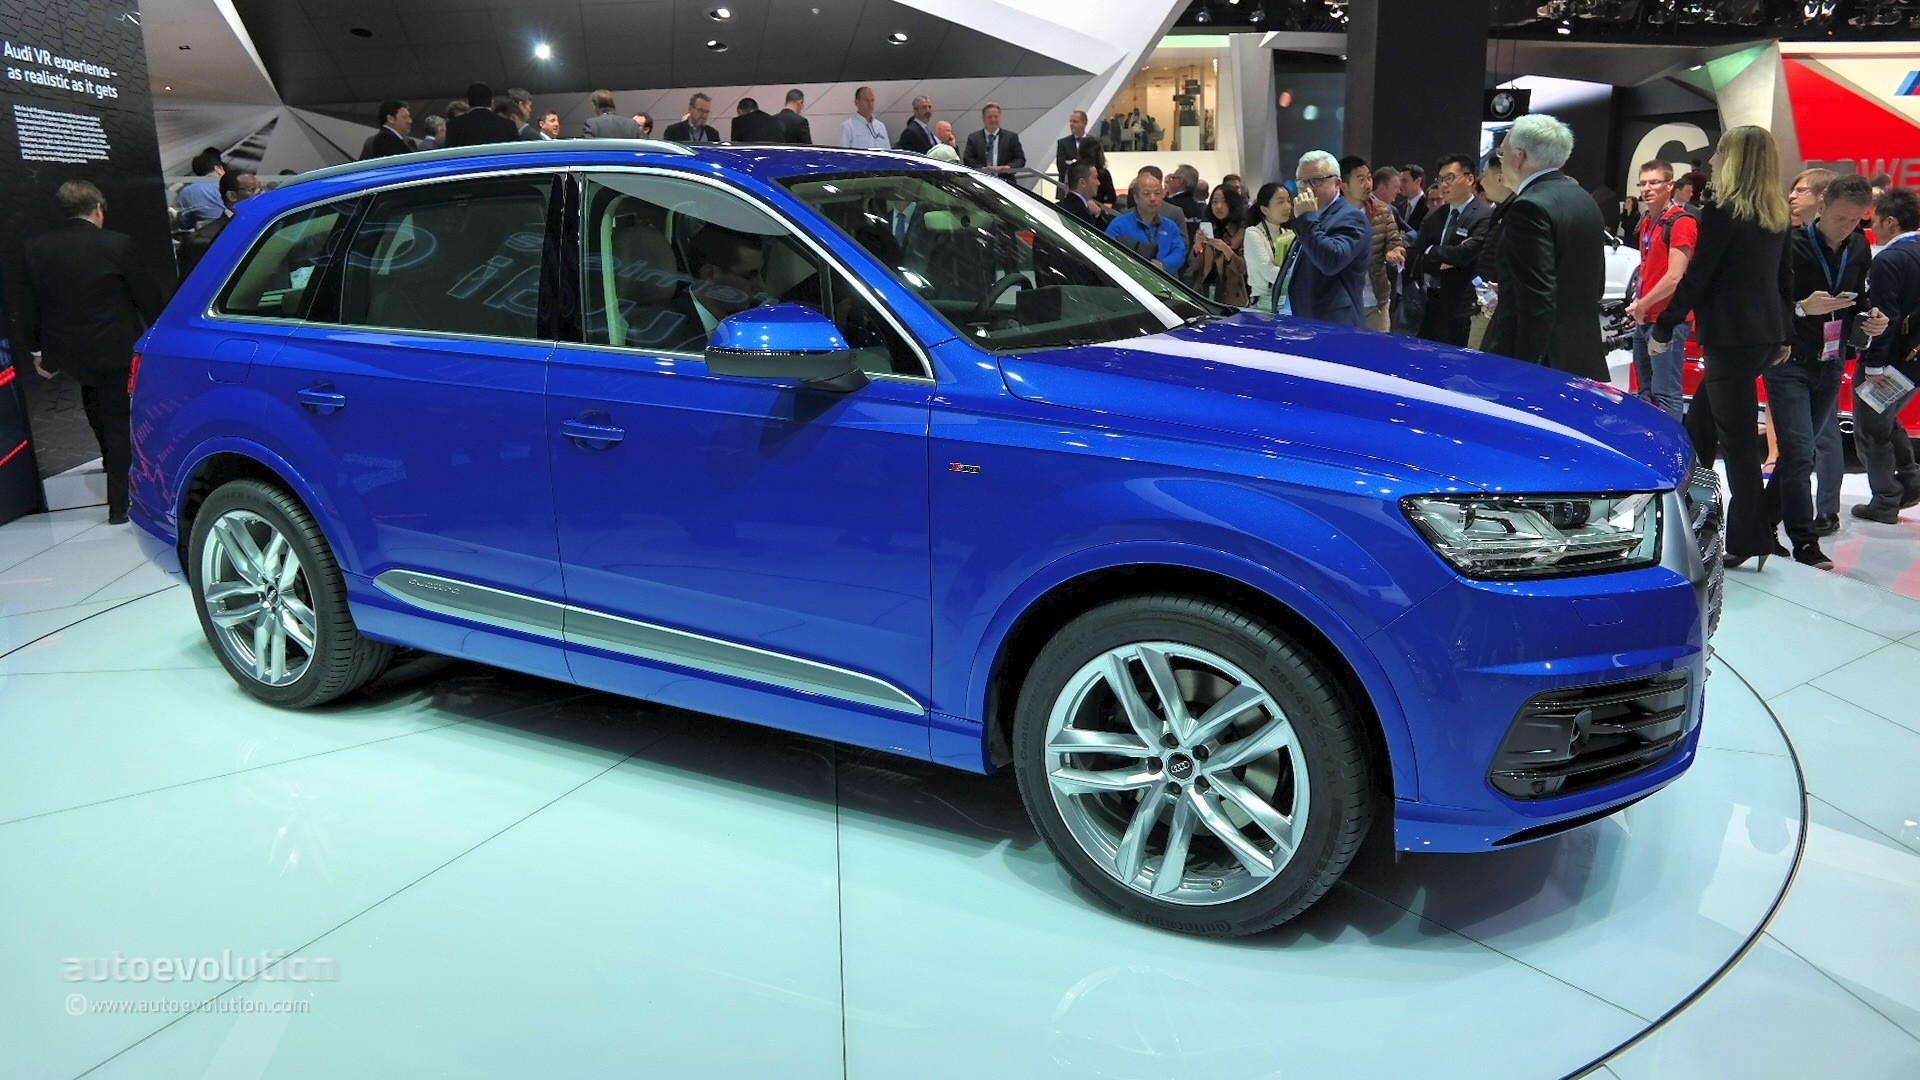 2015 audi q7 coming to uk with 272 hp diesel and 7 seats. Black Bedroom Furniture Sets. Home Design Ideas